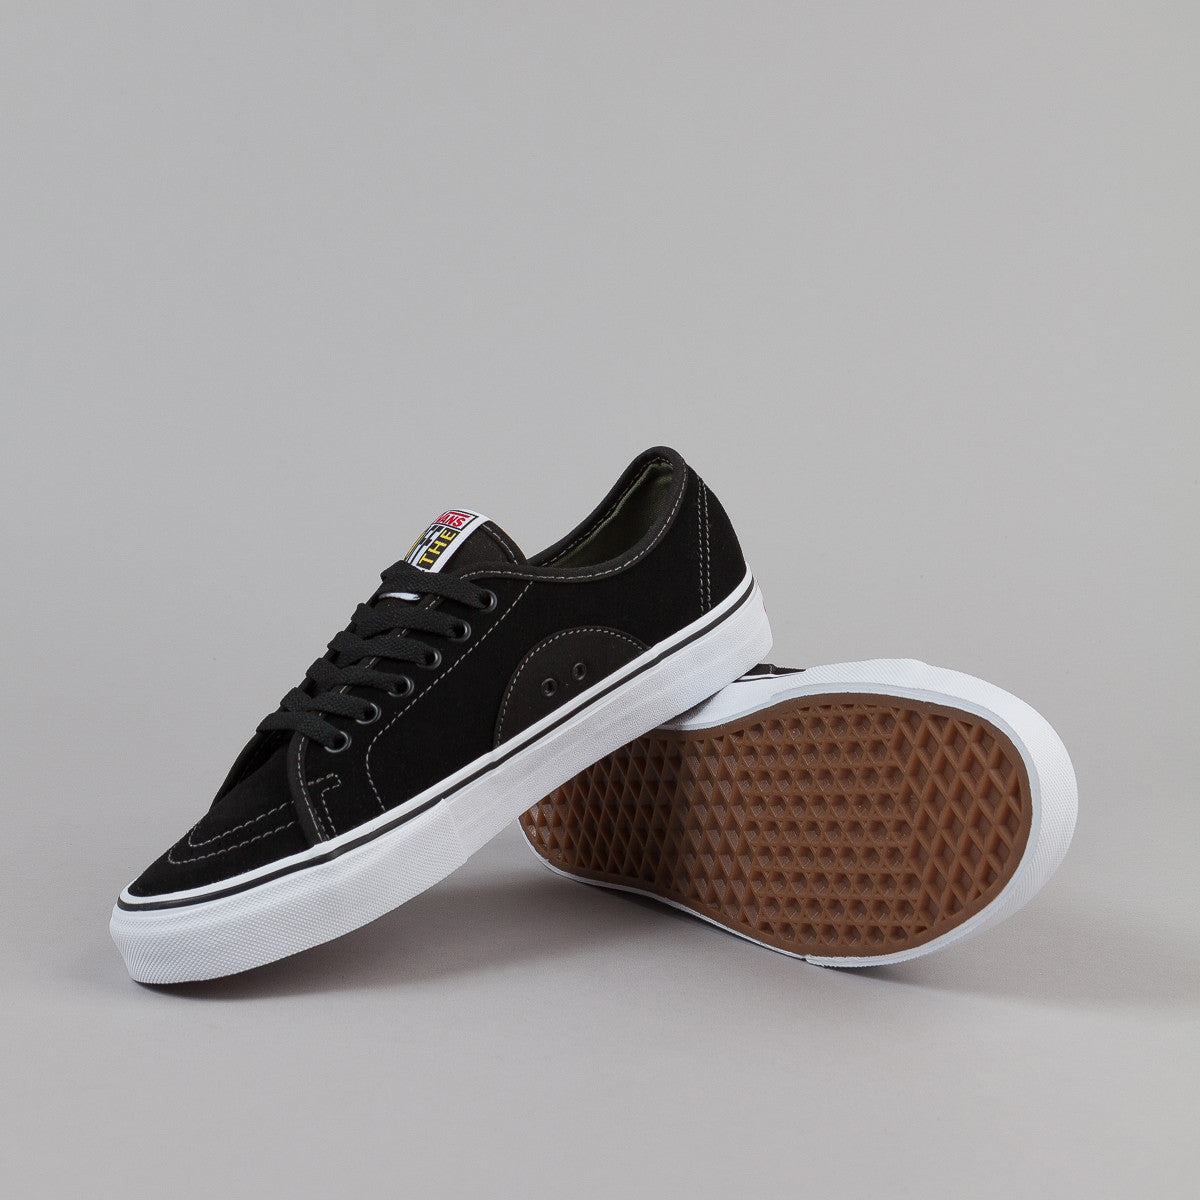 Vans AV Classic Shoes - Black / Olivine